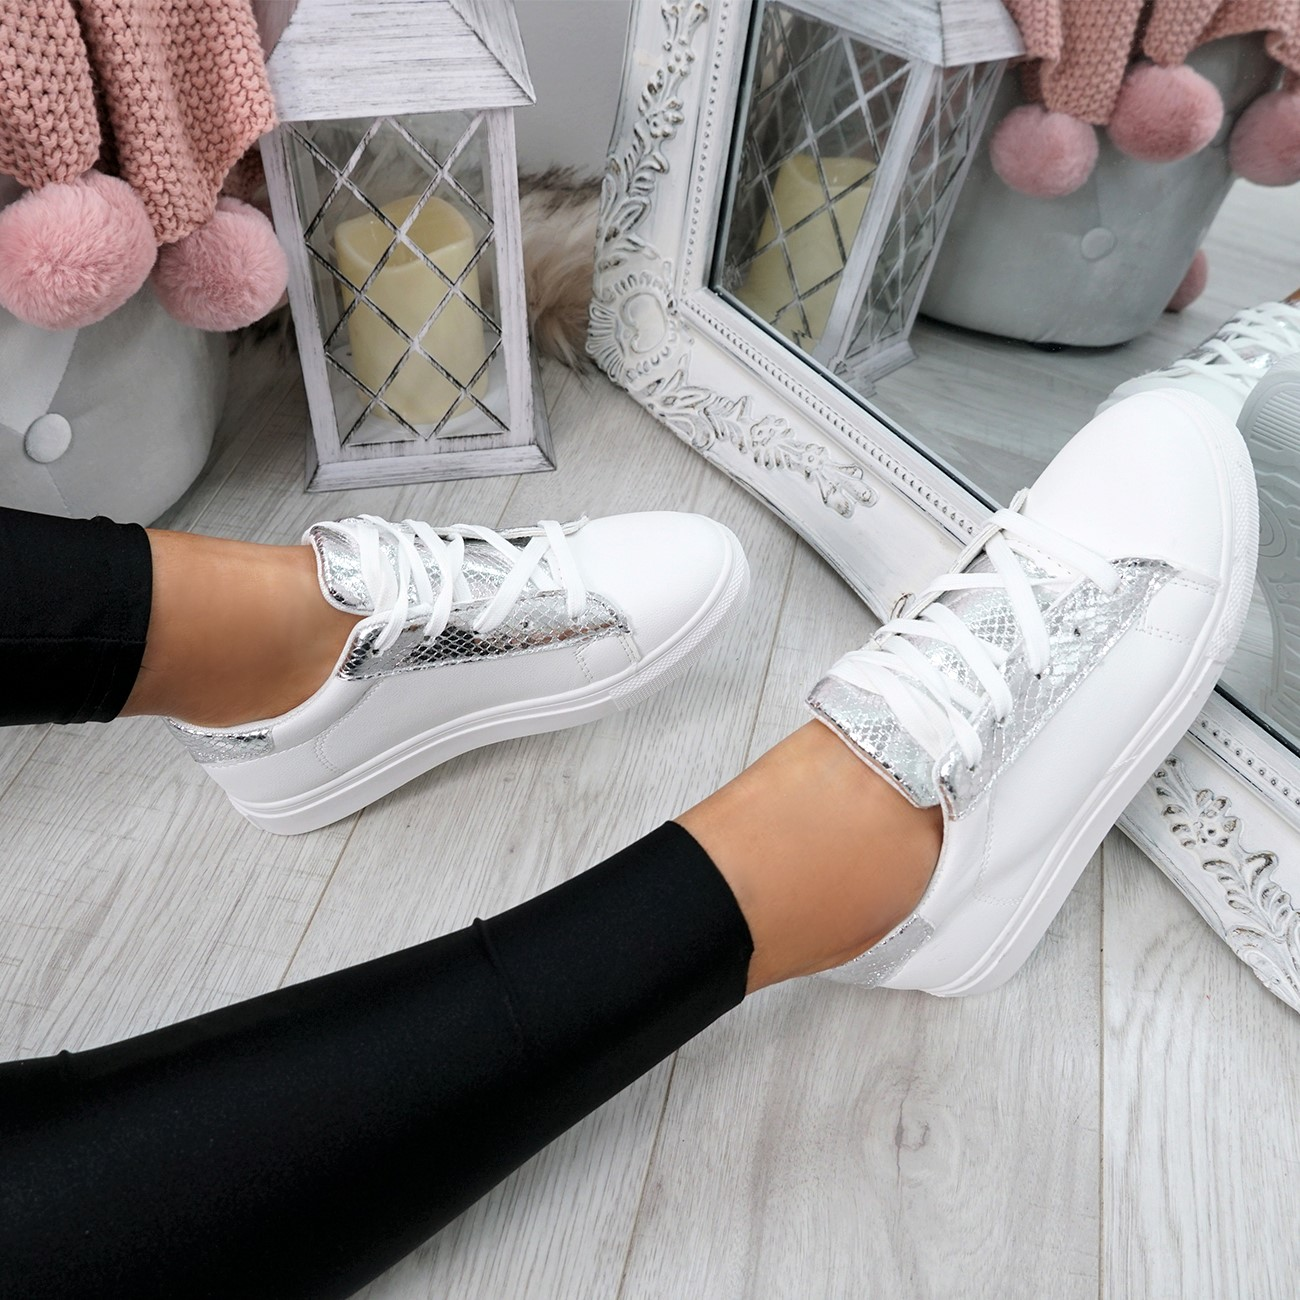 WOMENS-LADIES-SNAKE-SKIN-GLITTER-LACE-UP-TRAINERS-PLIMSOLLS-SNEAKERS-SHOES thumbnail 23